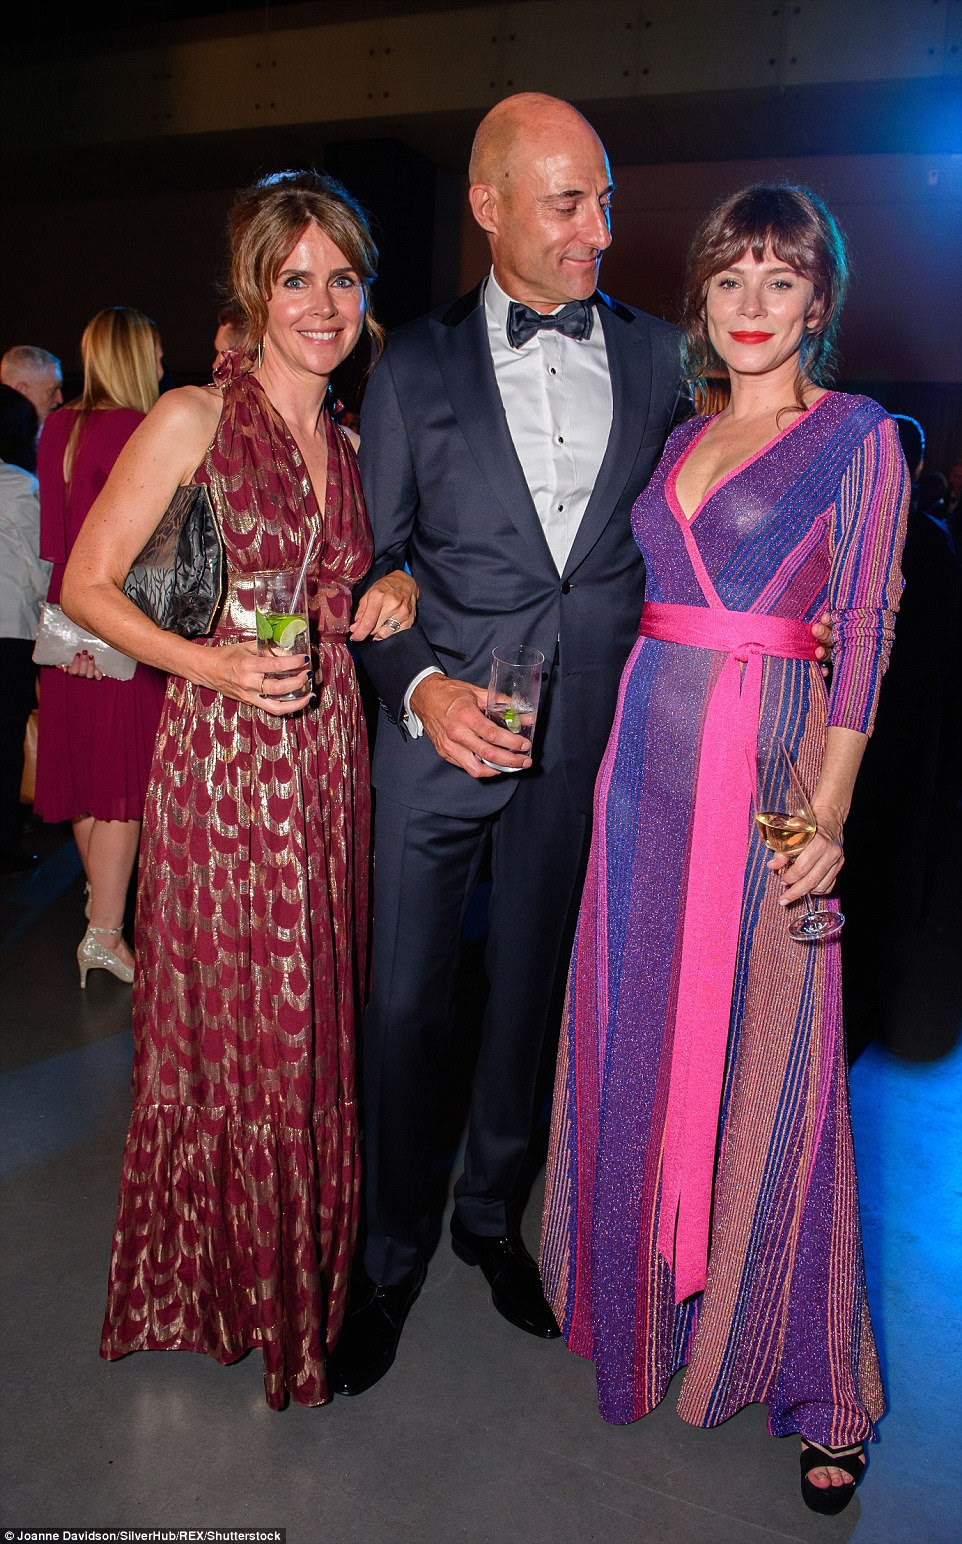 What a trio: Mark Strong with his wife Liza Marshall and Anna Friel at the event